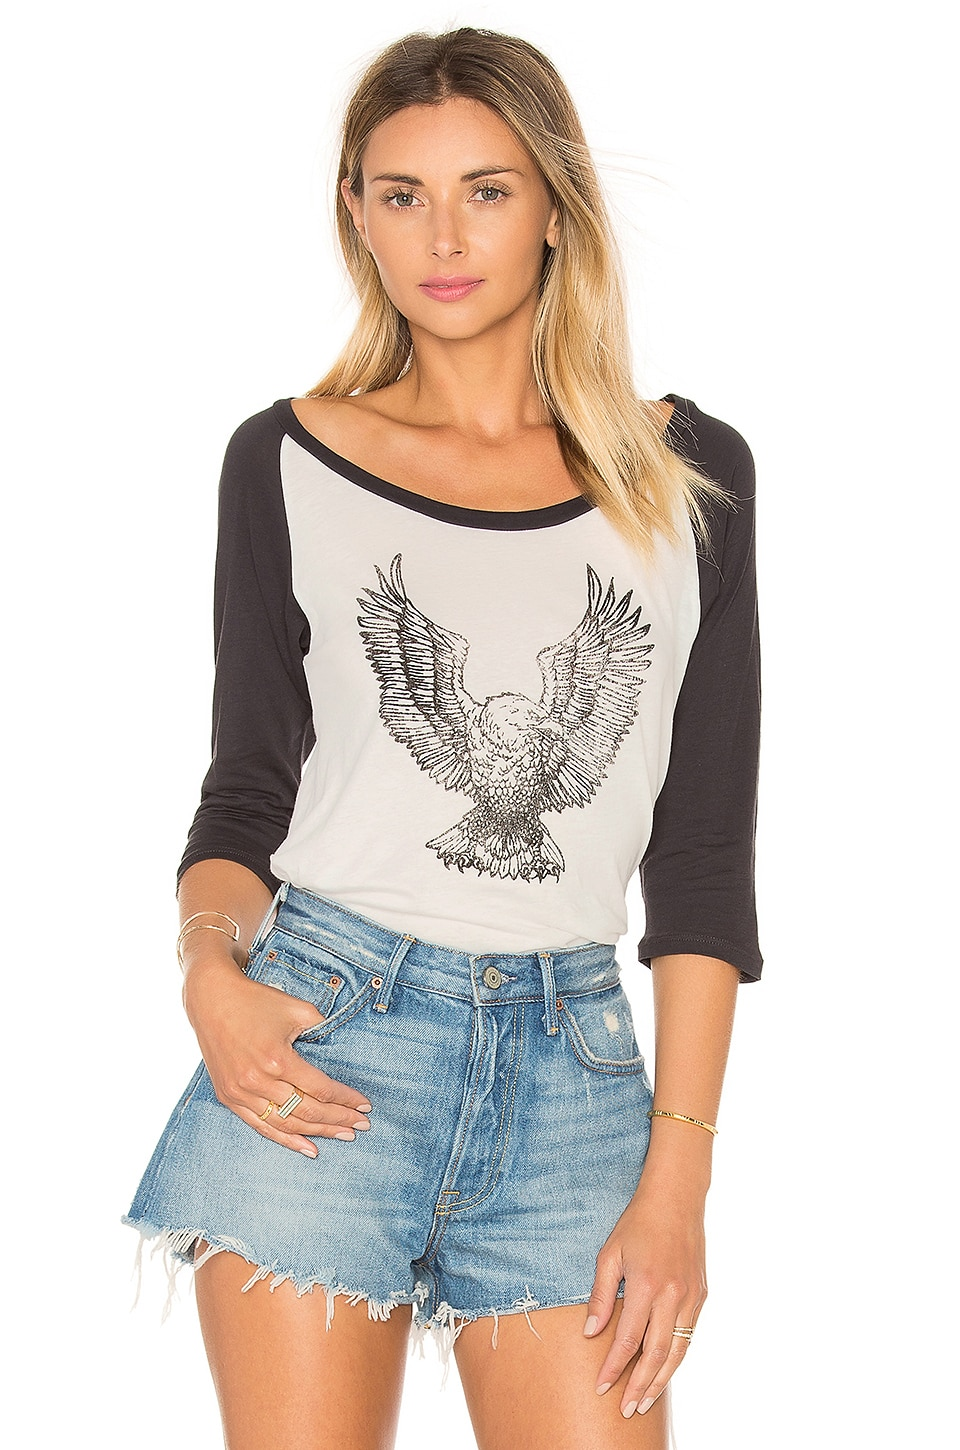 Clayton Eagle Baseball Tee in White